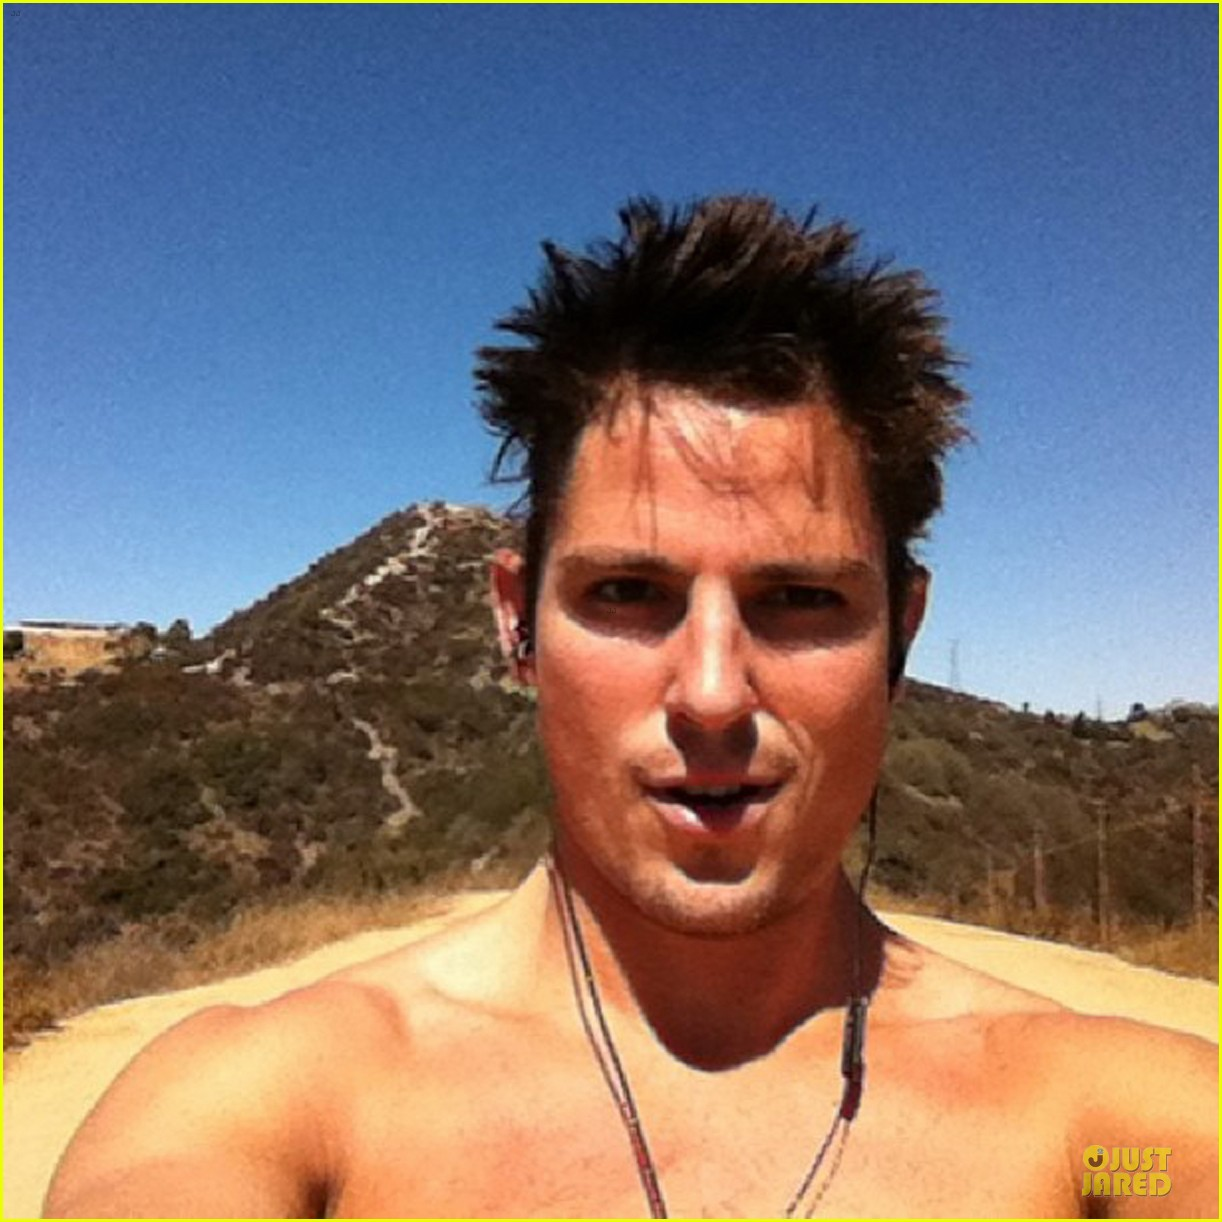 sean faris shirtless back in shape after shoulder surgery 03